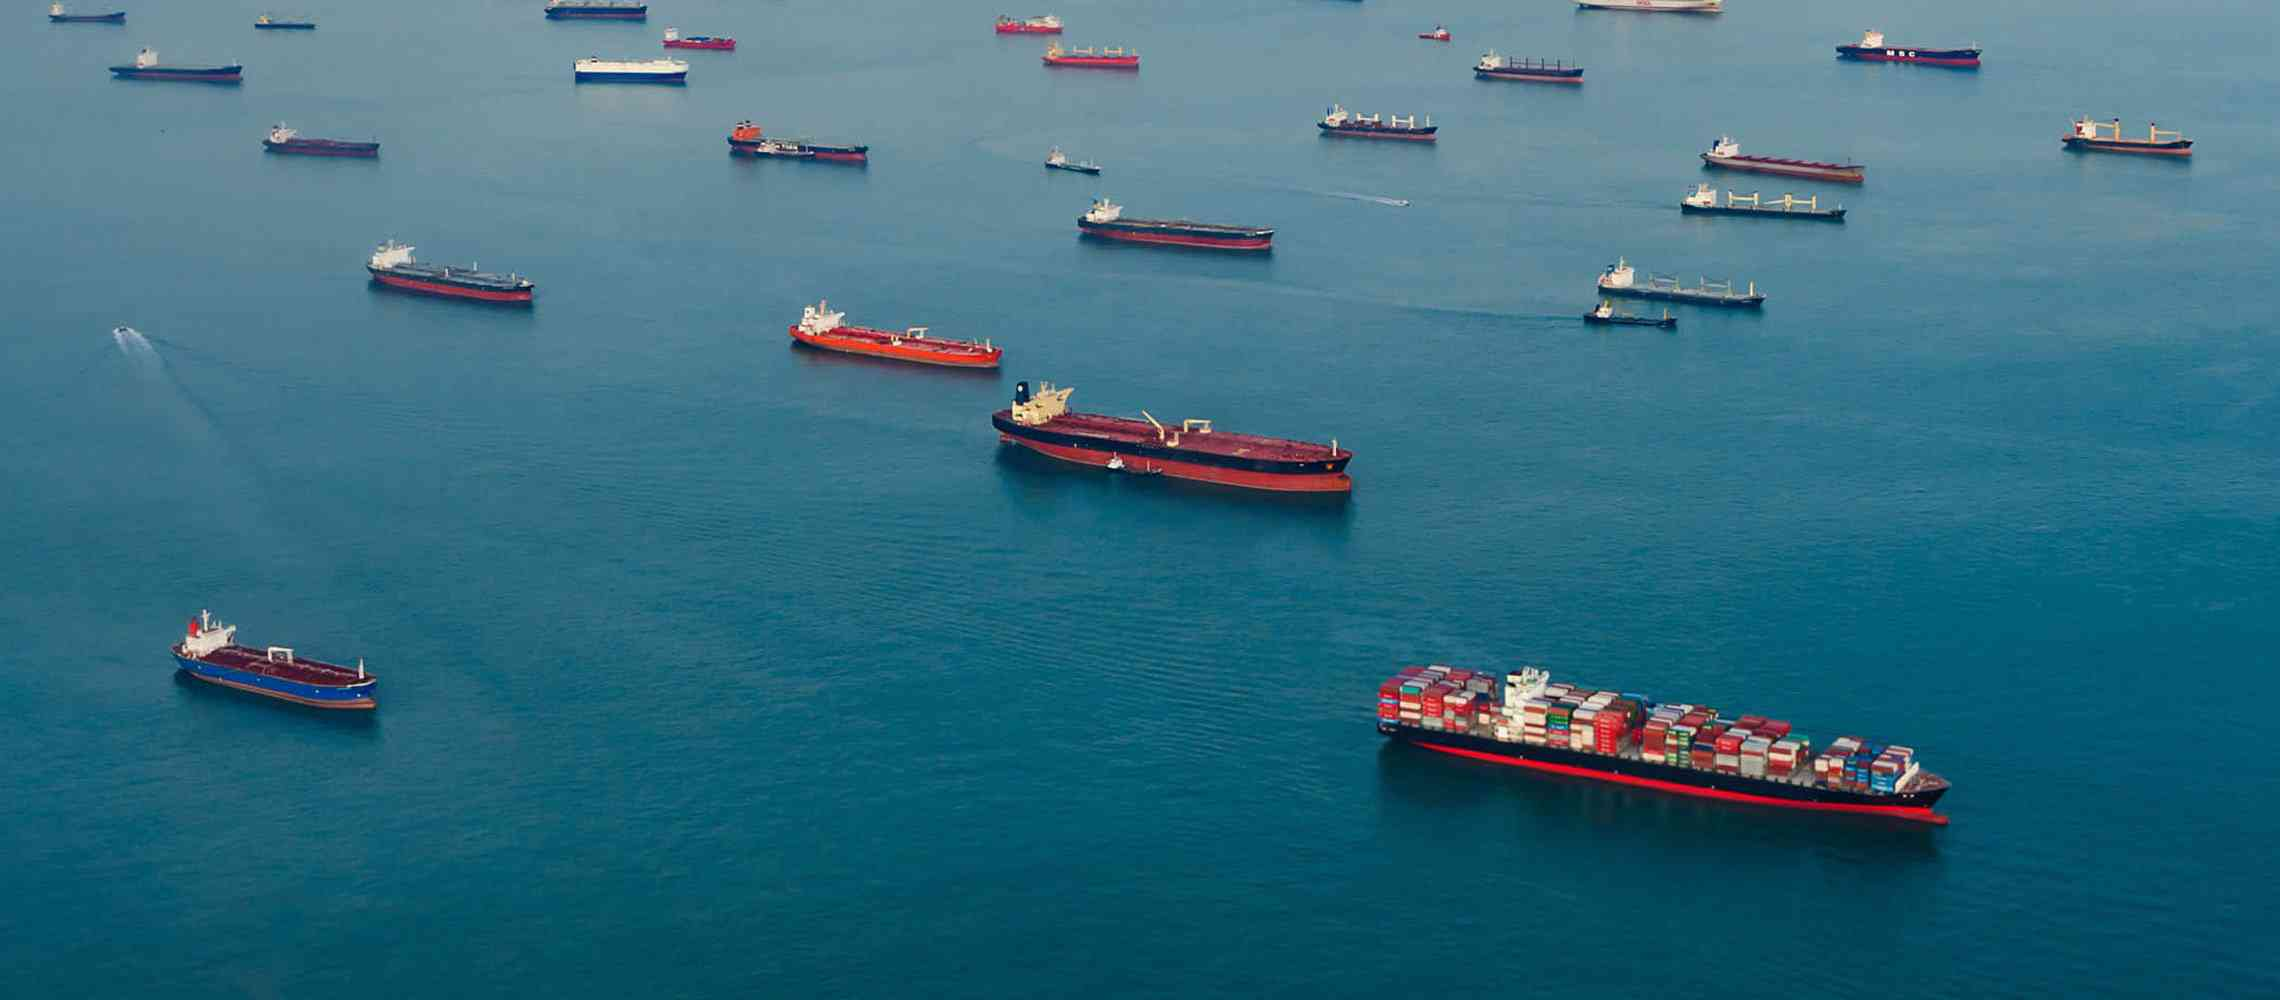 MENAS equipment and services are relied upon by over 2,000 vessels each month